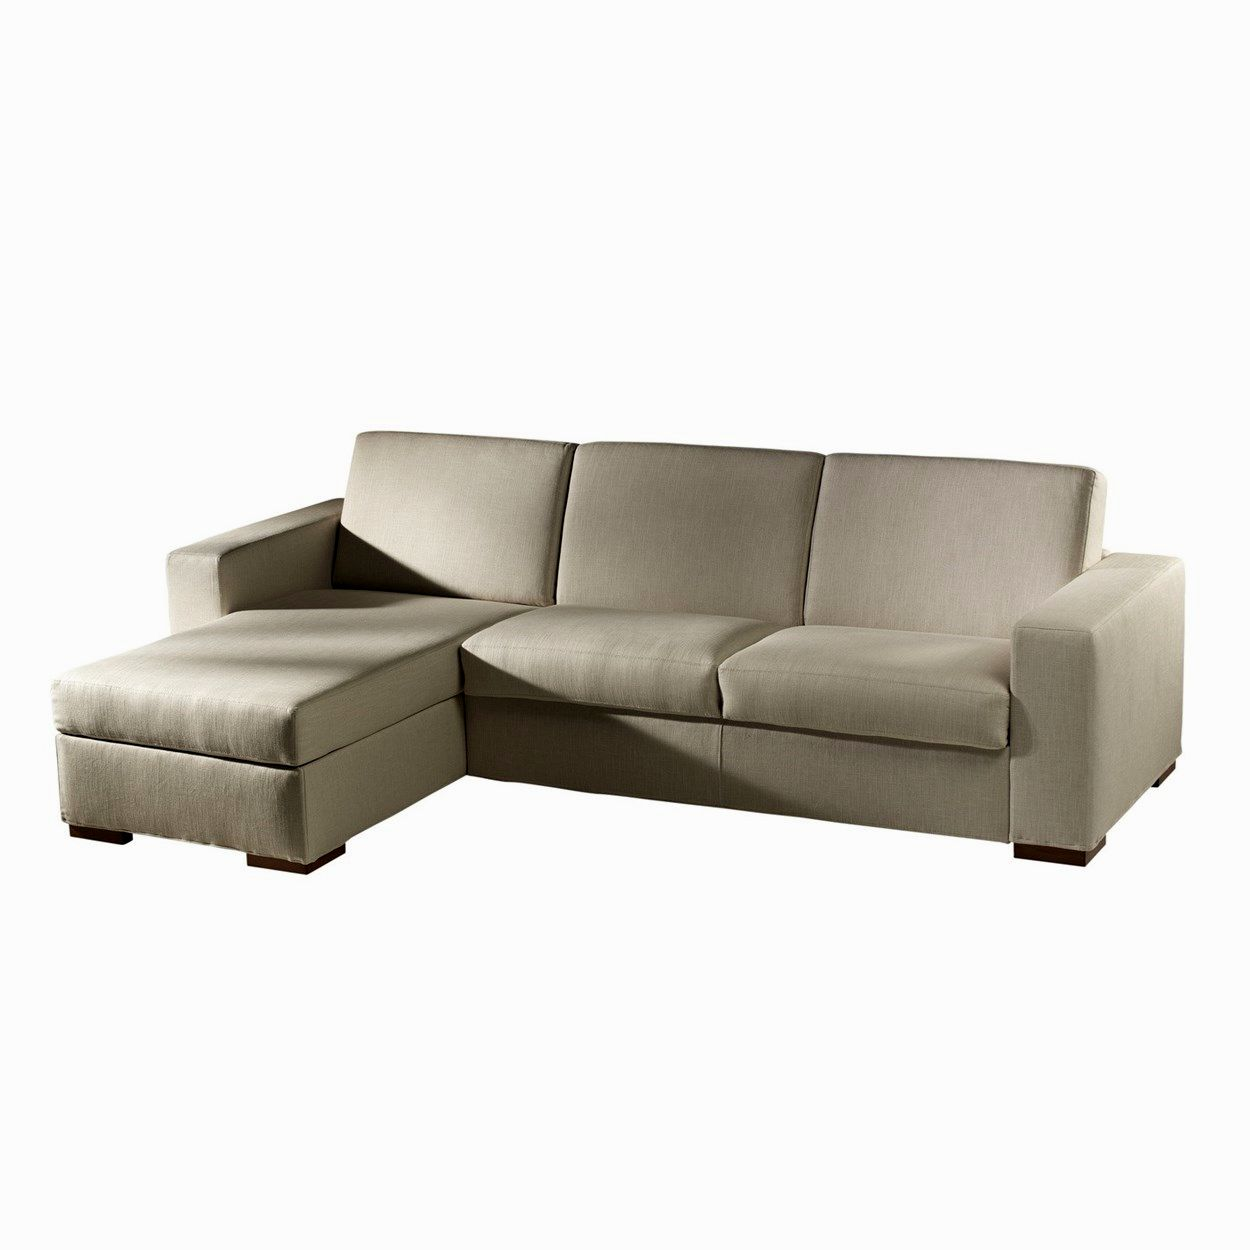 sensational sofa bed with chaise photo-Awesome sofa Bed with Chaise Inspiration